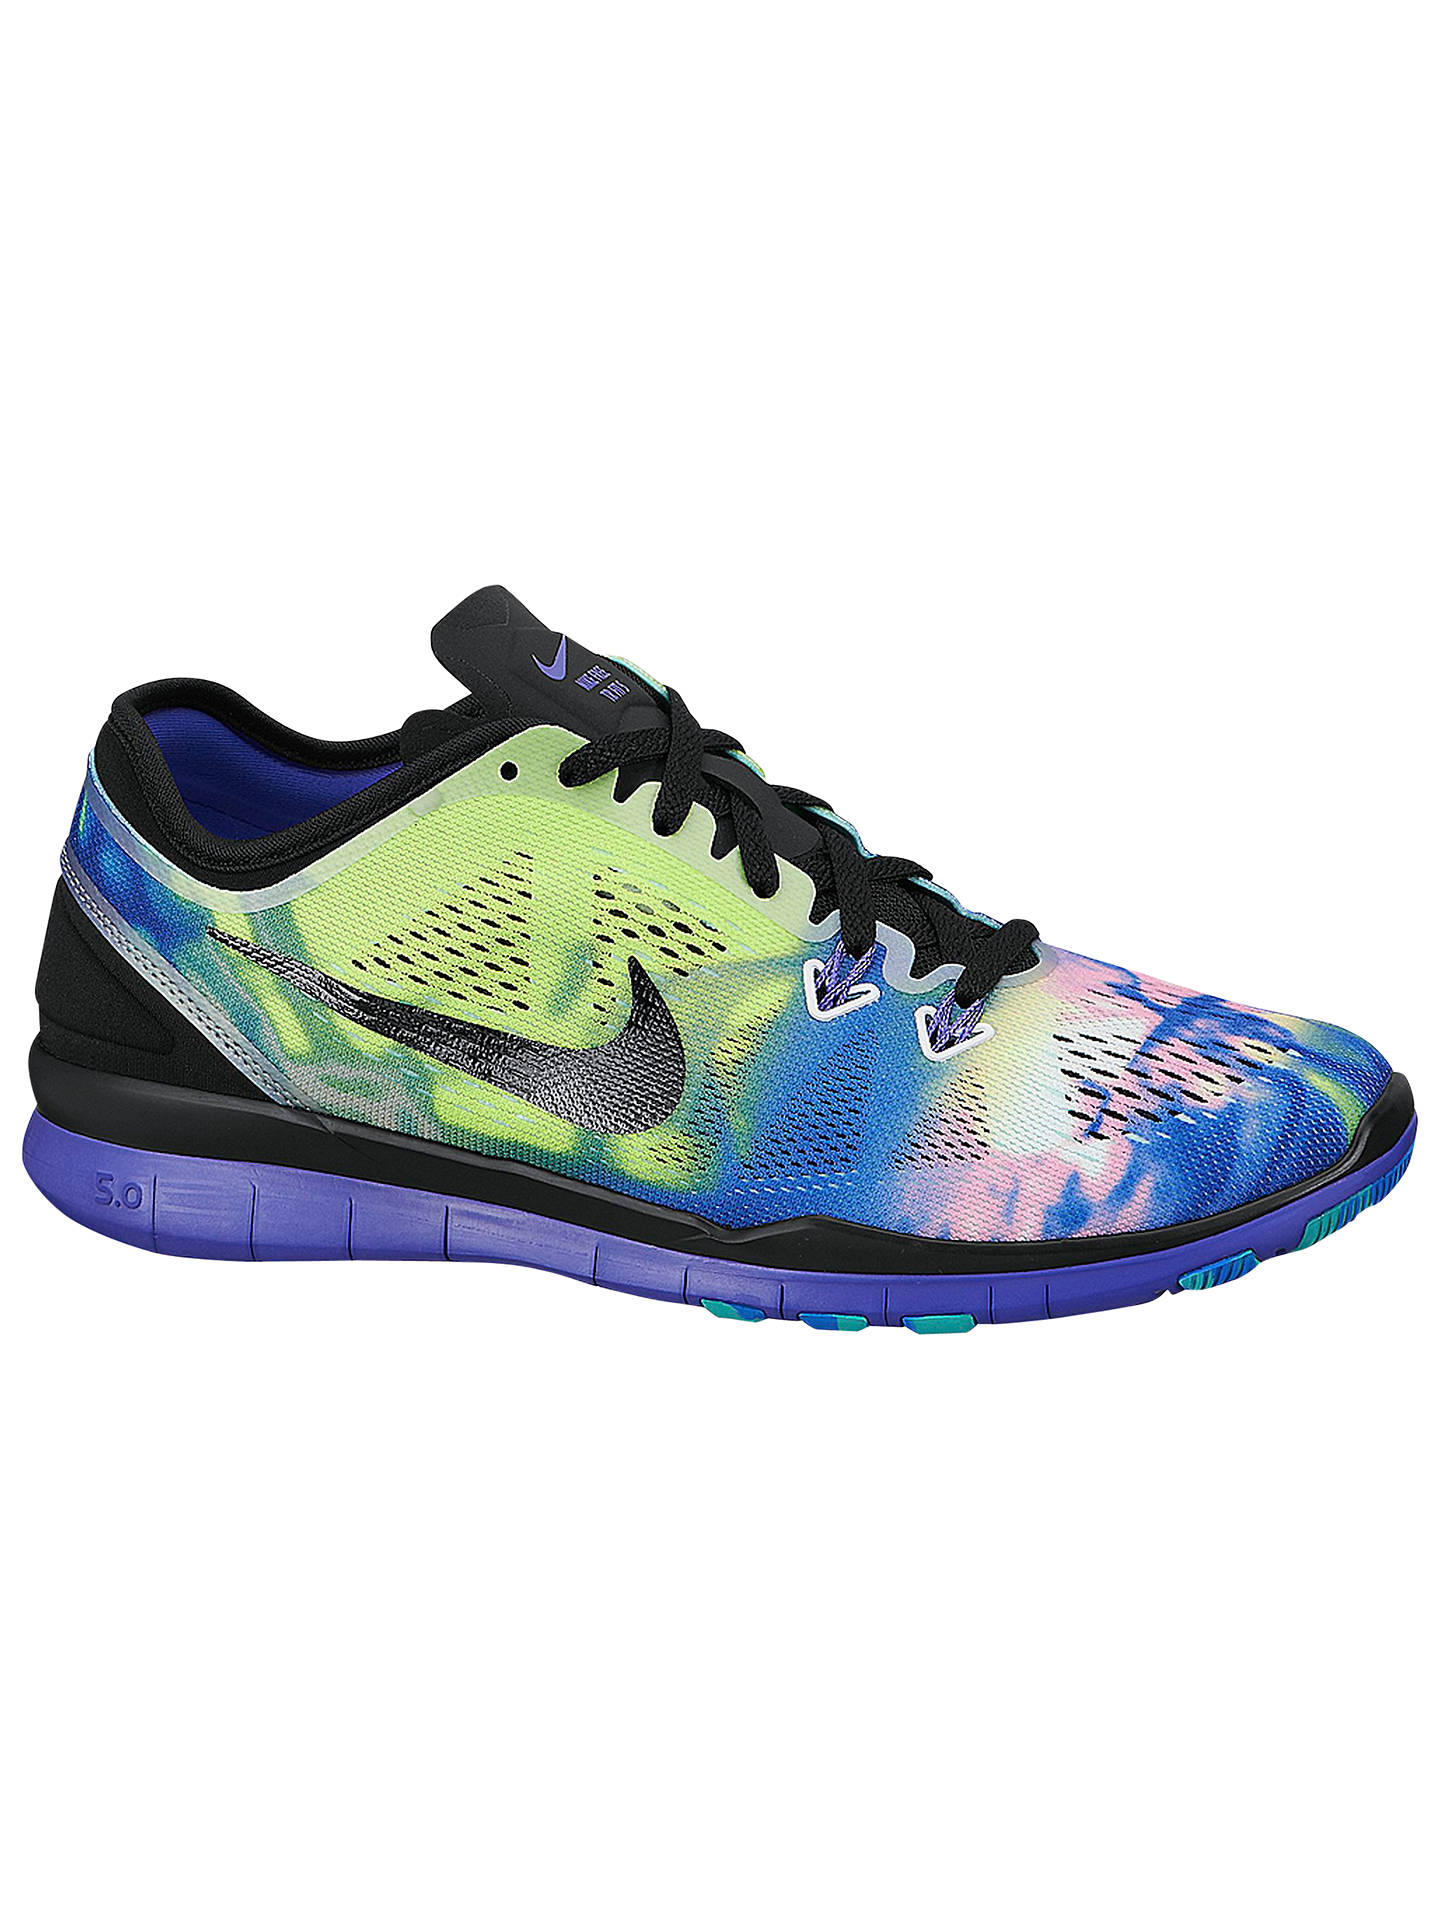 85e9483942aca Nike Free TR Fit 5 Print Women s Cross Trainers at John Lewis   Partners